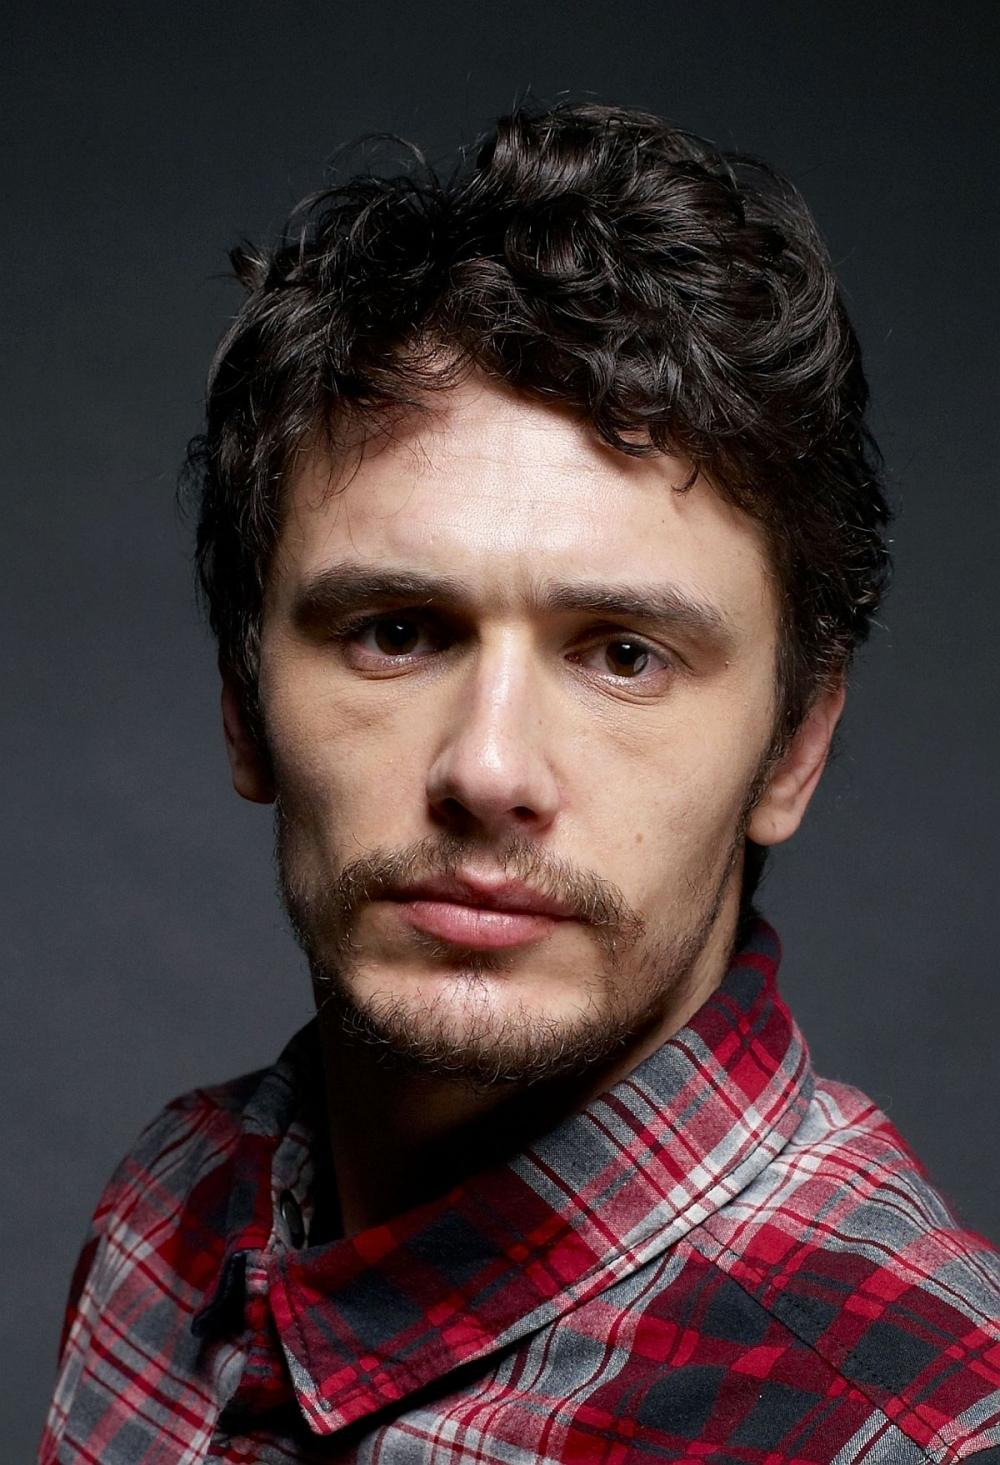 Photo №2409 James Franco.